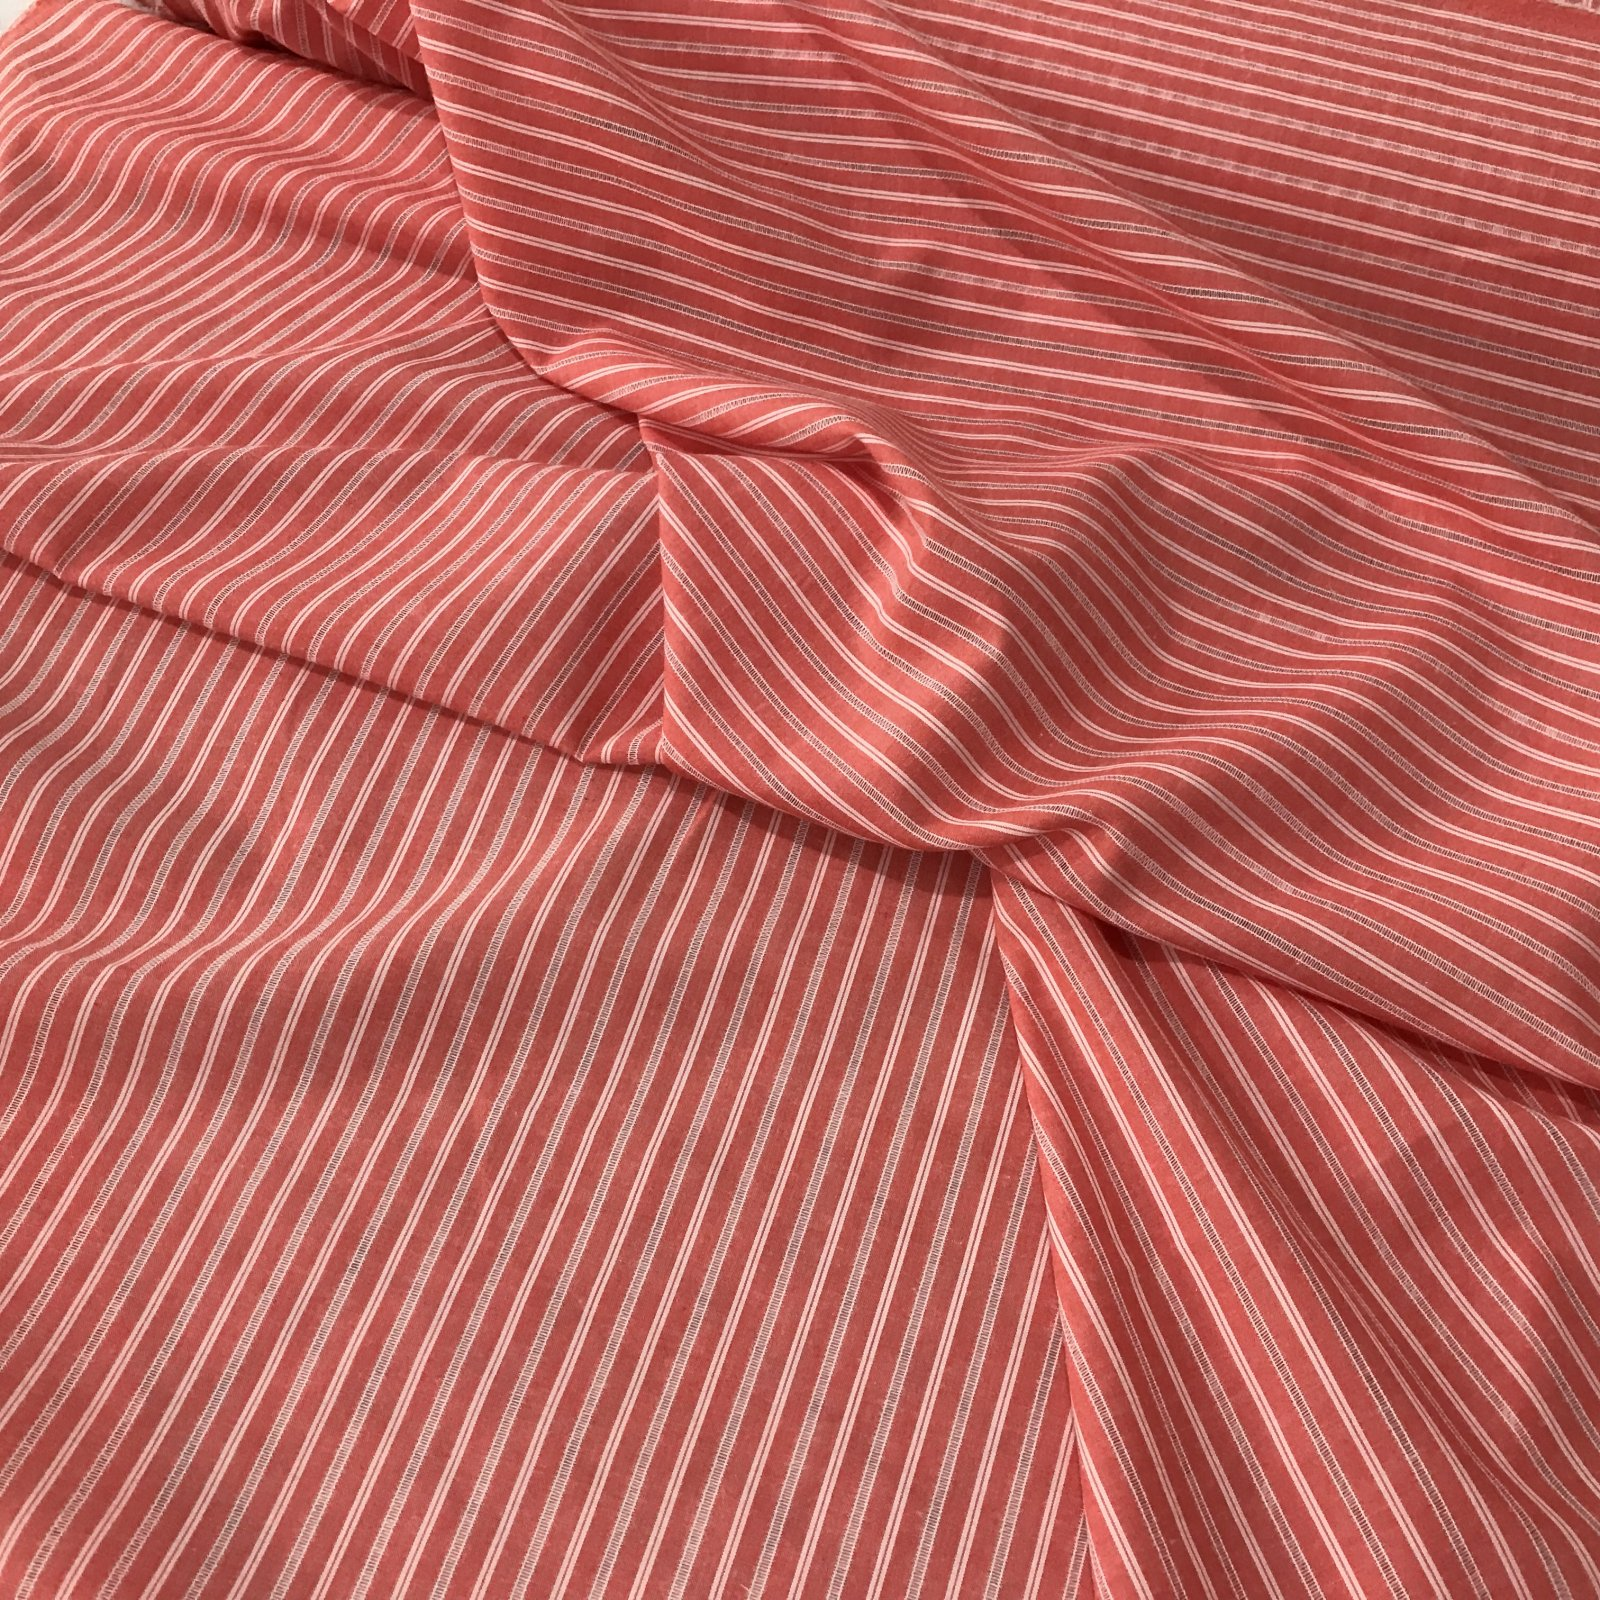 Cotton Woven - Red Spaced Stripes